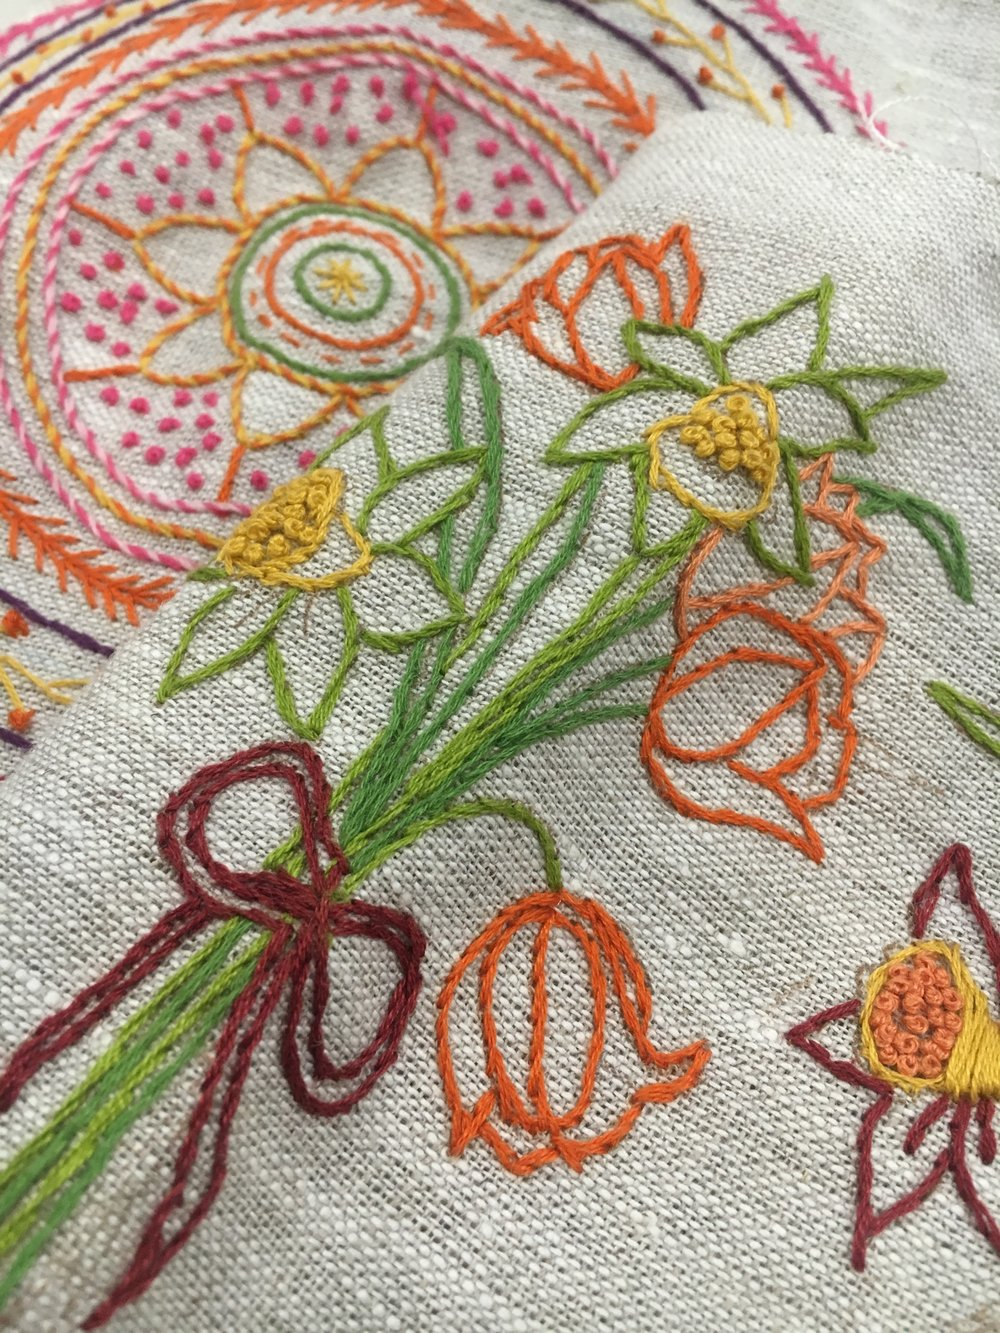 stem stitch floral embroidery